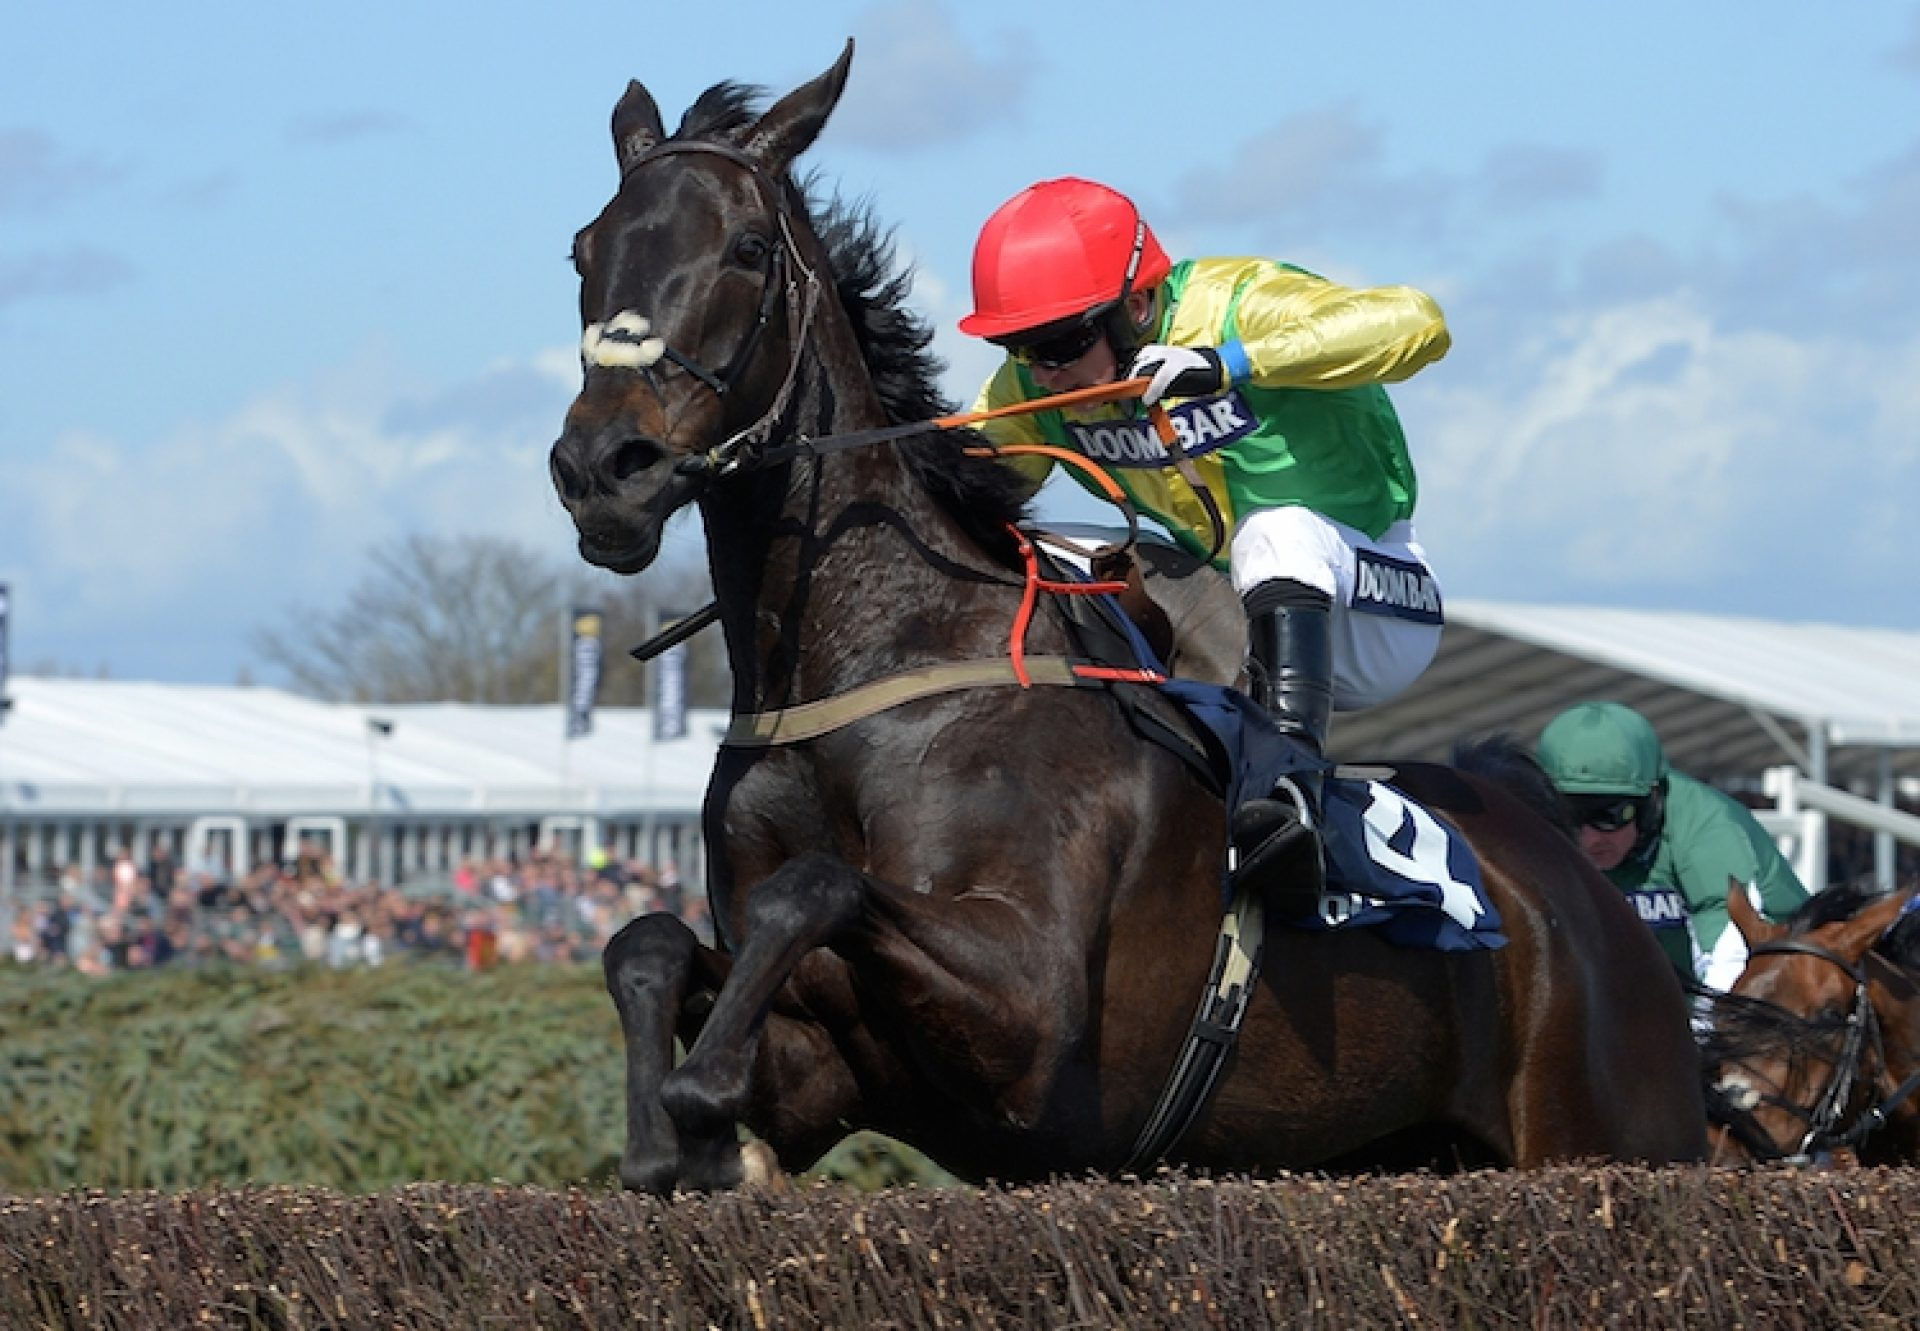 Sizing Granite (Milan) winning the G1 Maghull Novices' Chase at Aintree